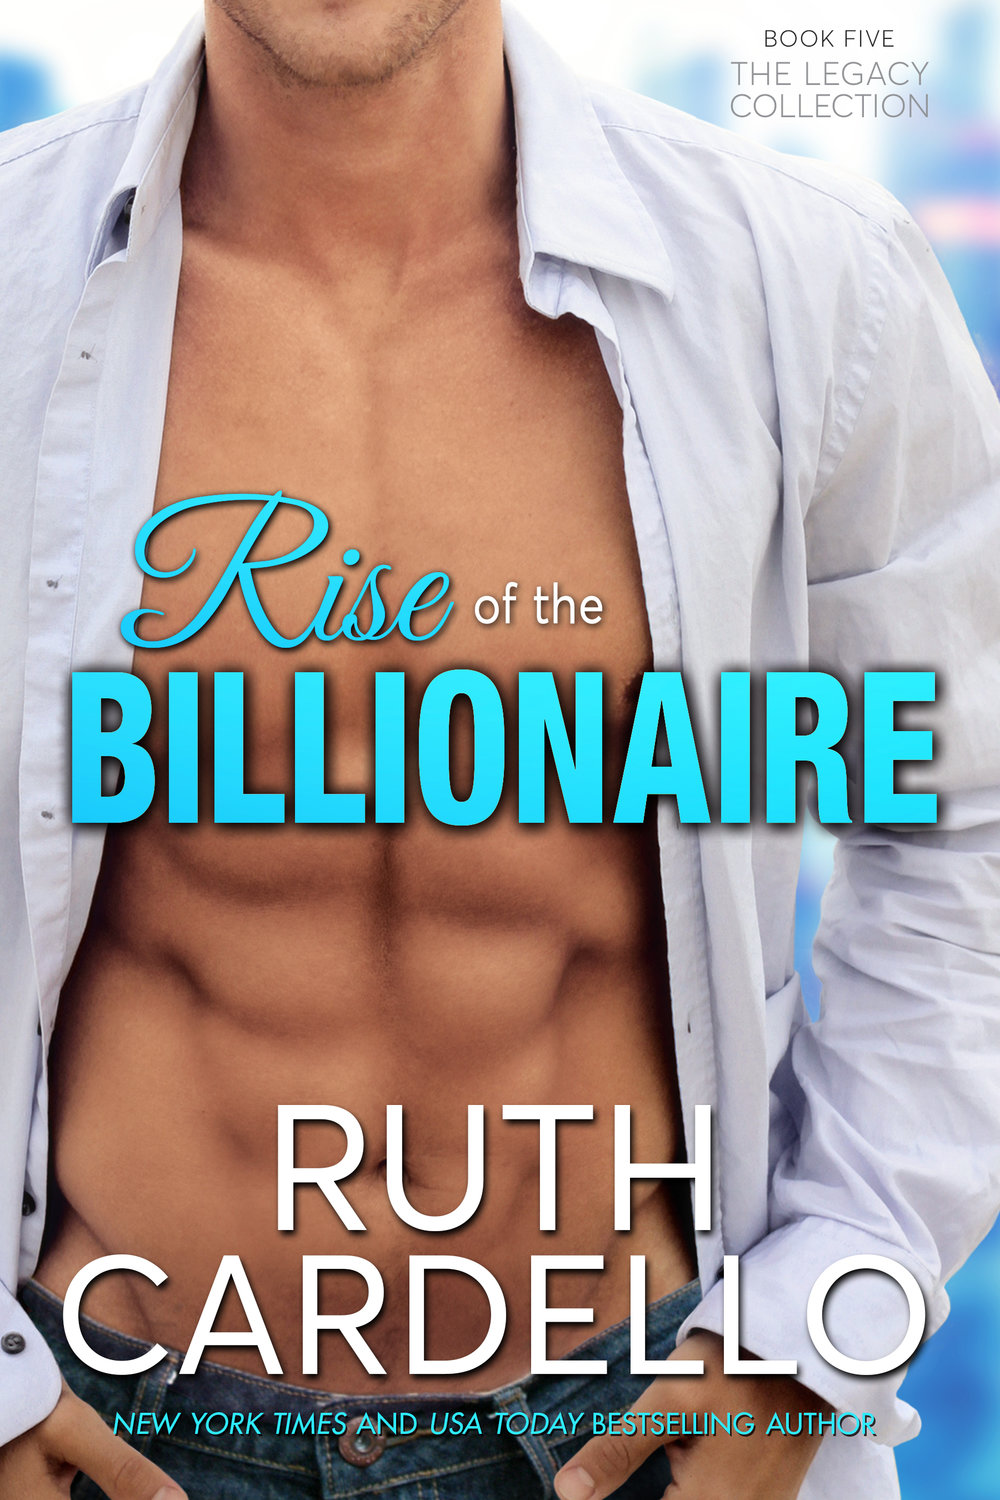 Rise of the Billionaire